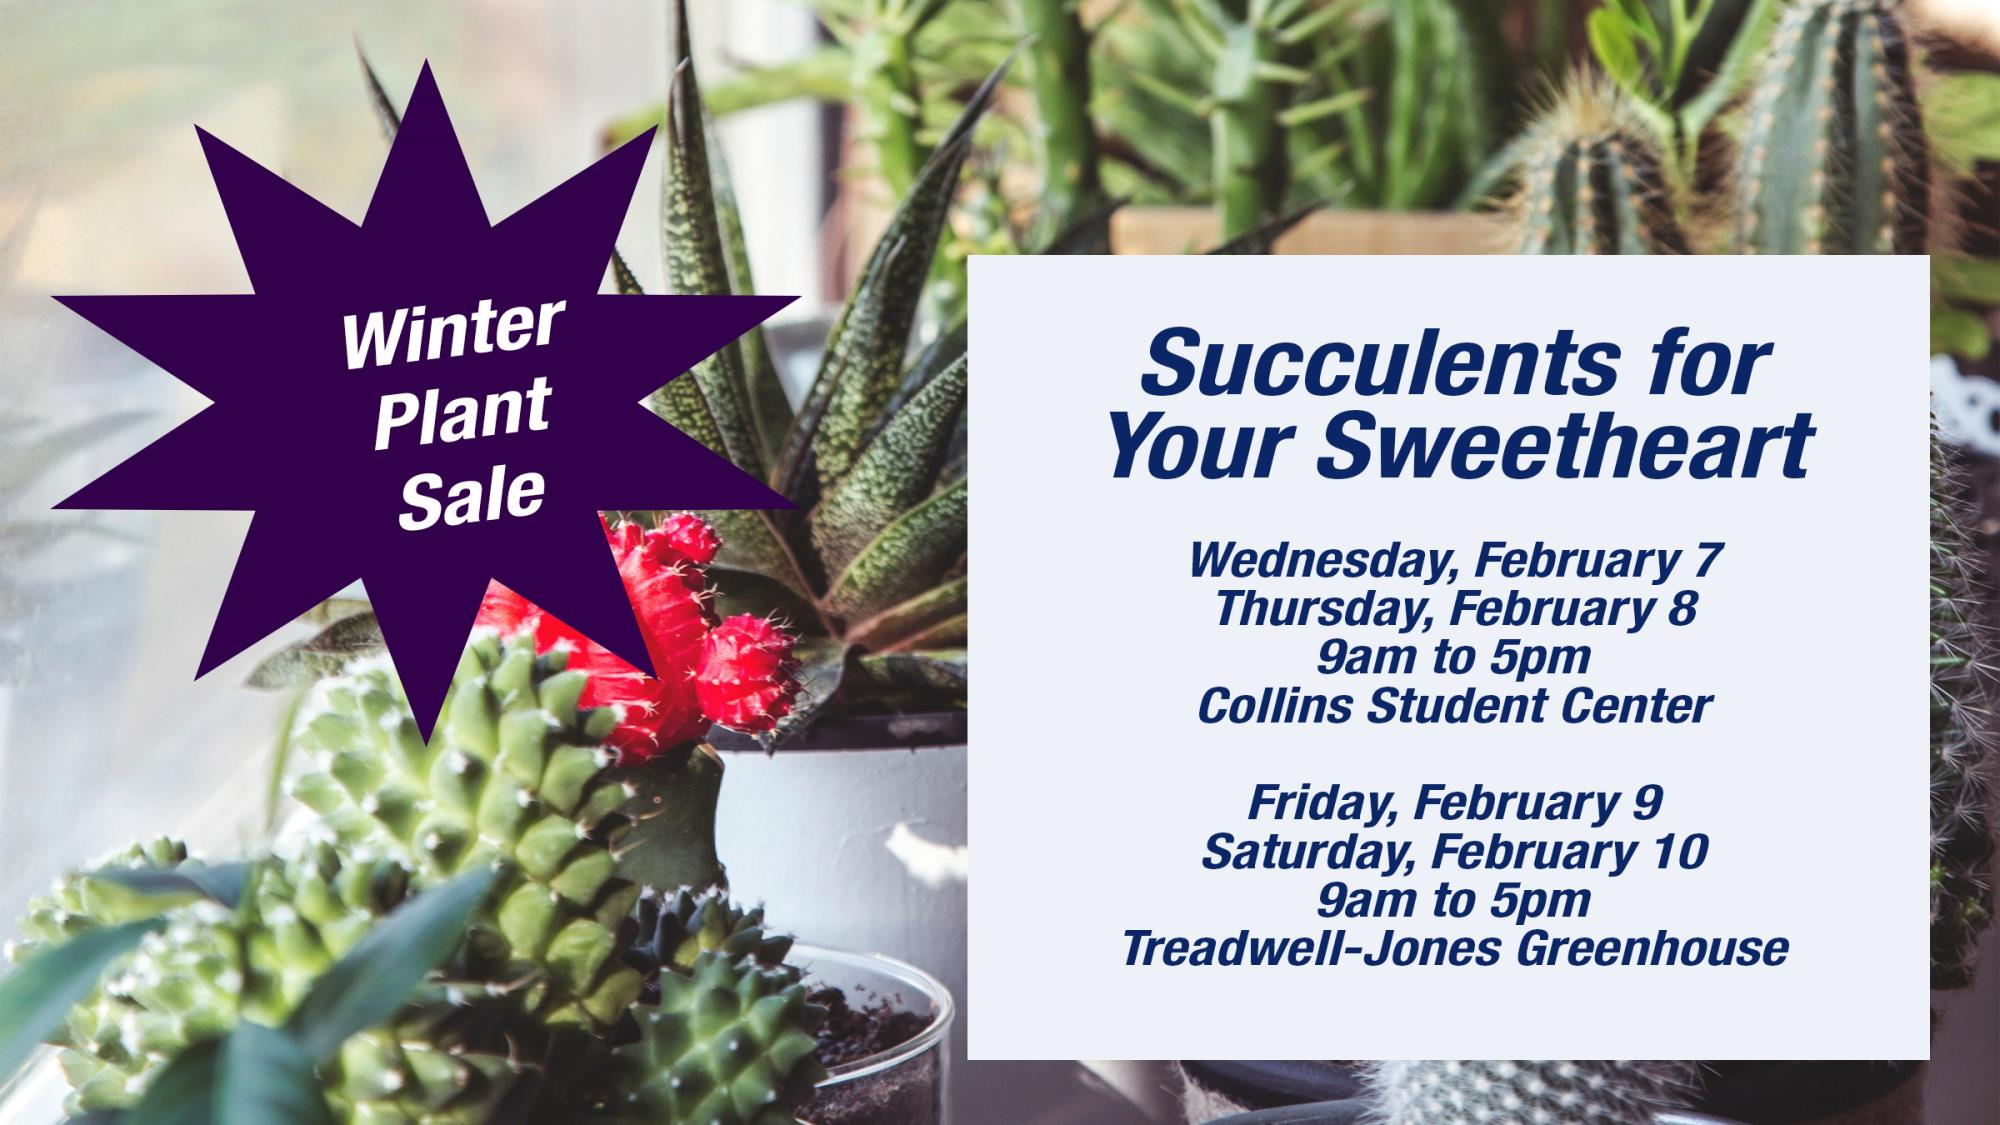 Plant Sale, Plants, VHCC, Horticulture, Greenhouse